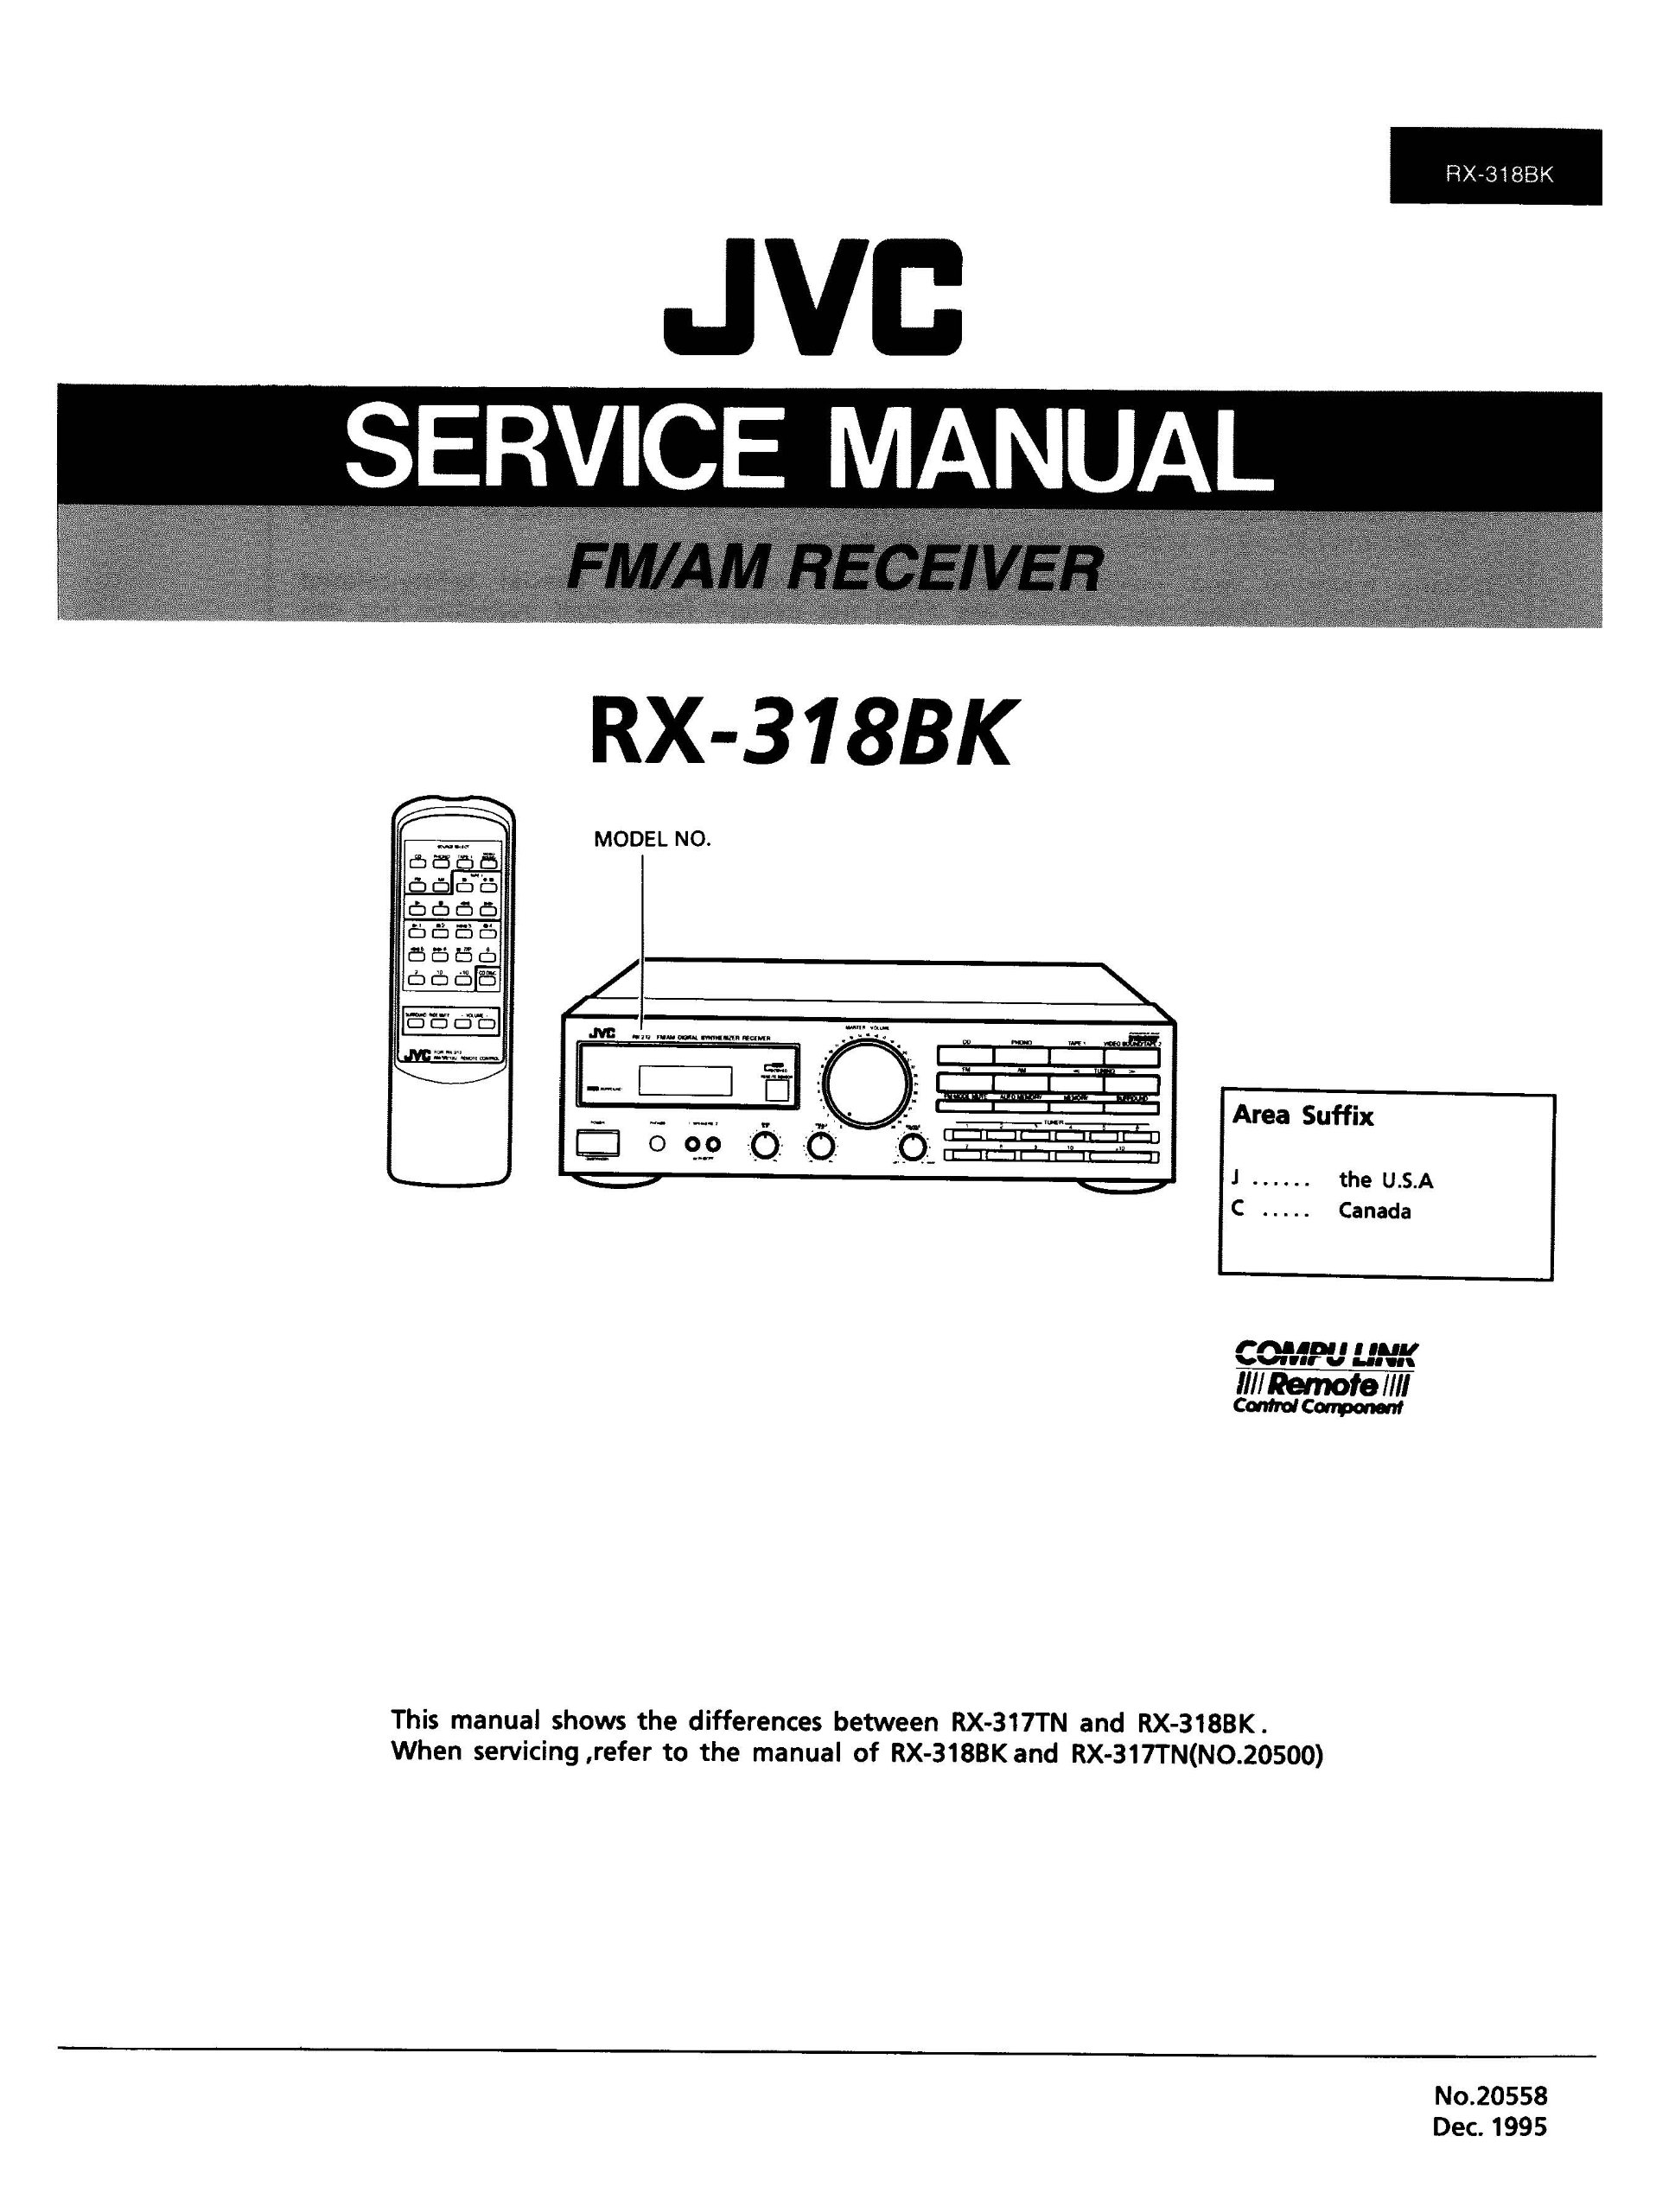 Jvc rx-3bk sch service manual download, schematics, eeprom, repair.